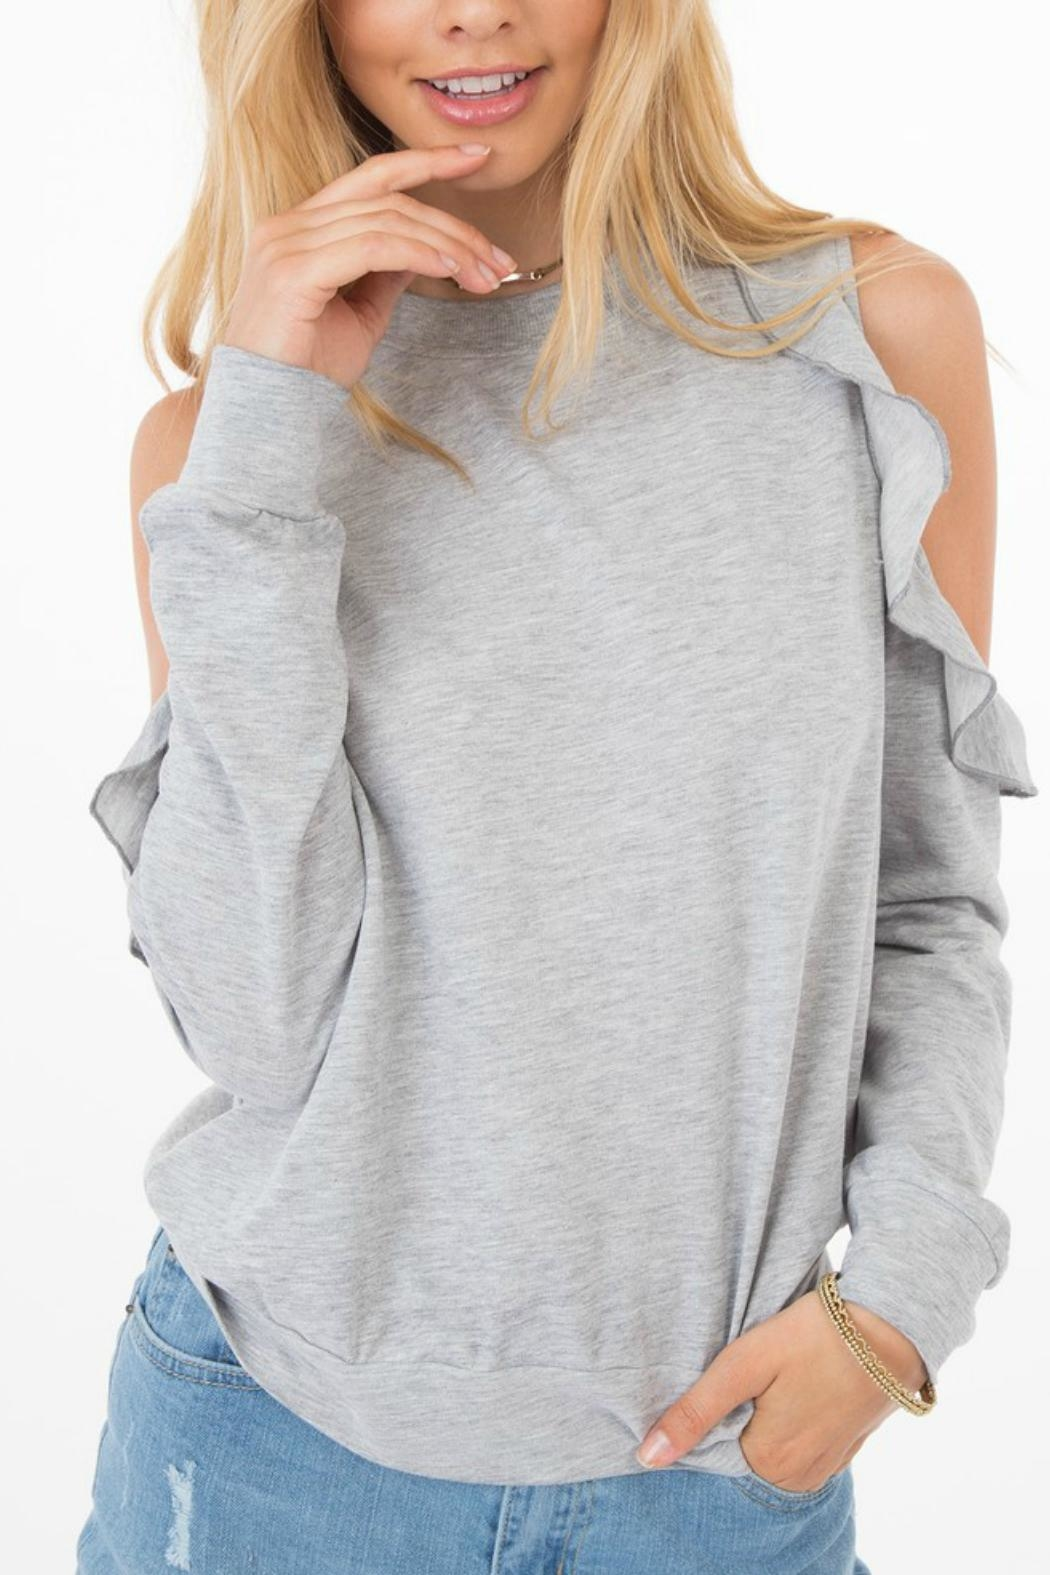 b1545149872e2 ALB Anchorage Ruffle Cold-Shoulder Sweater from Alaska by Apricot ...